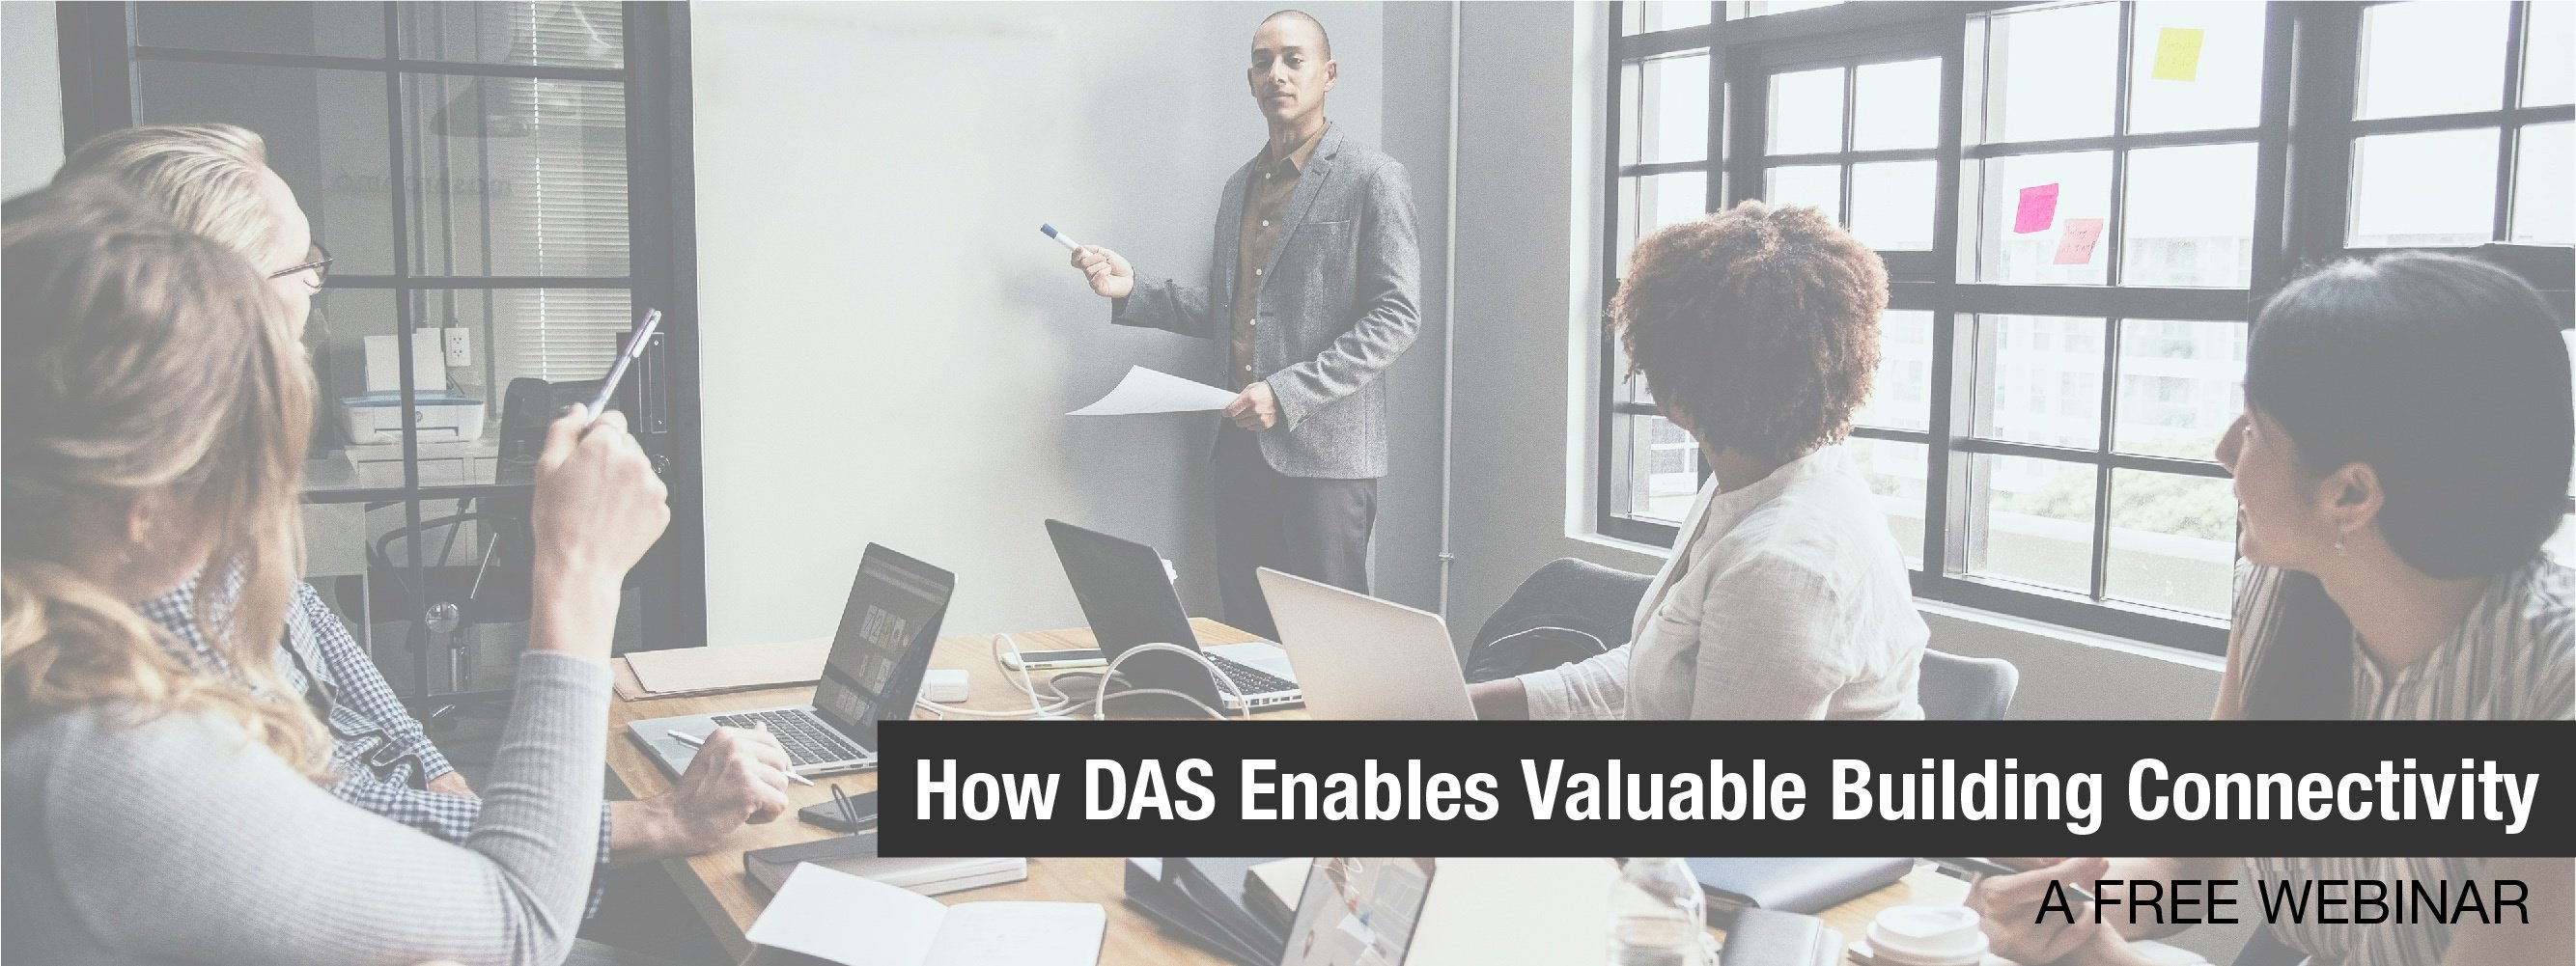 How DAS Enables Valuable Building Connectivity - A Free Webinar